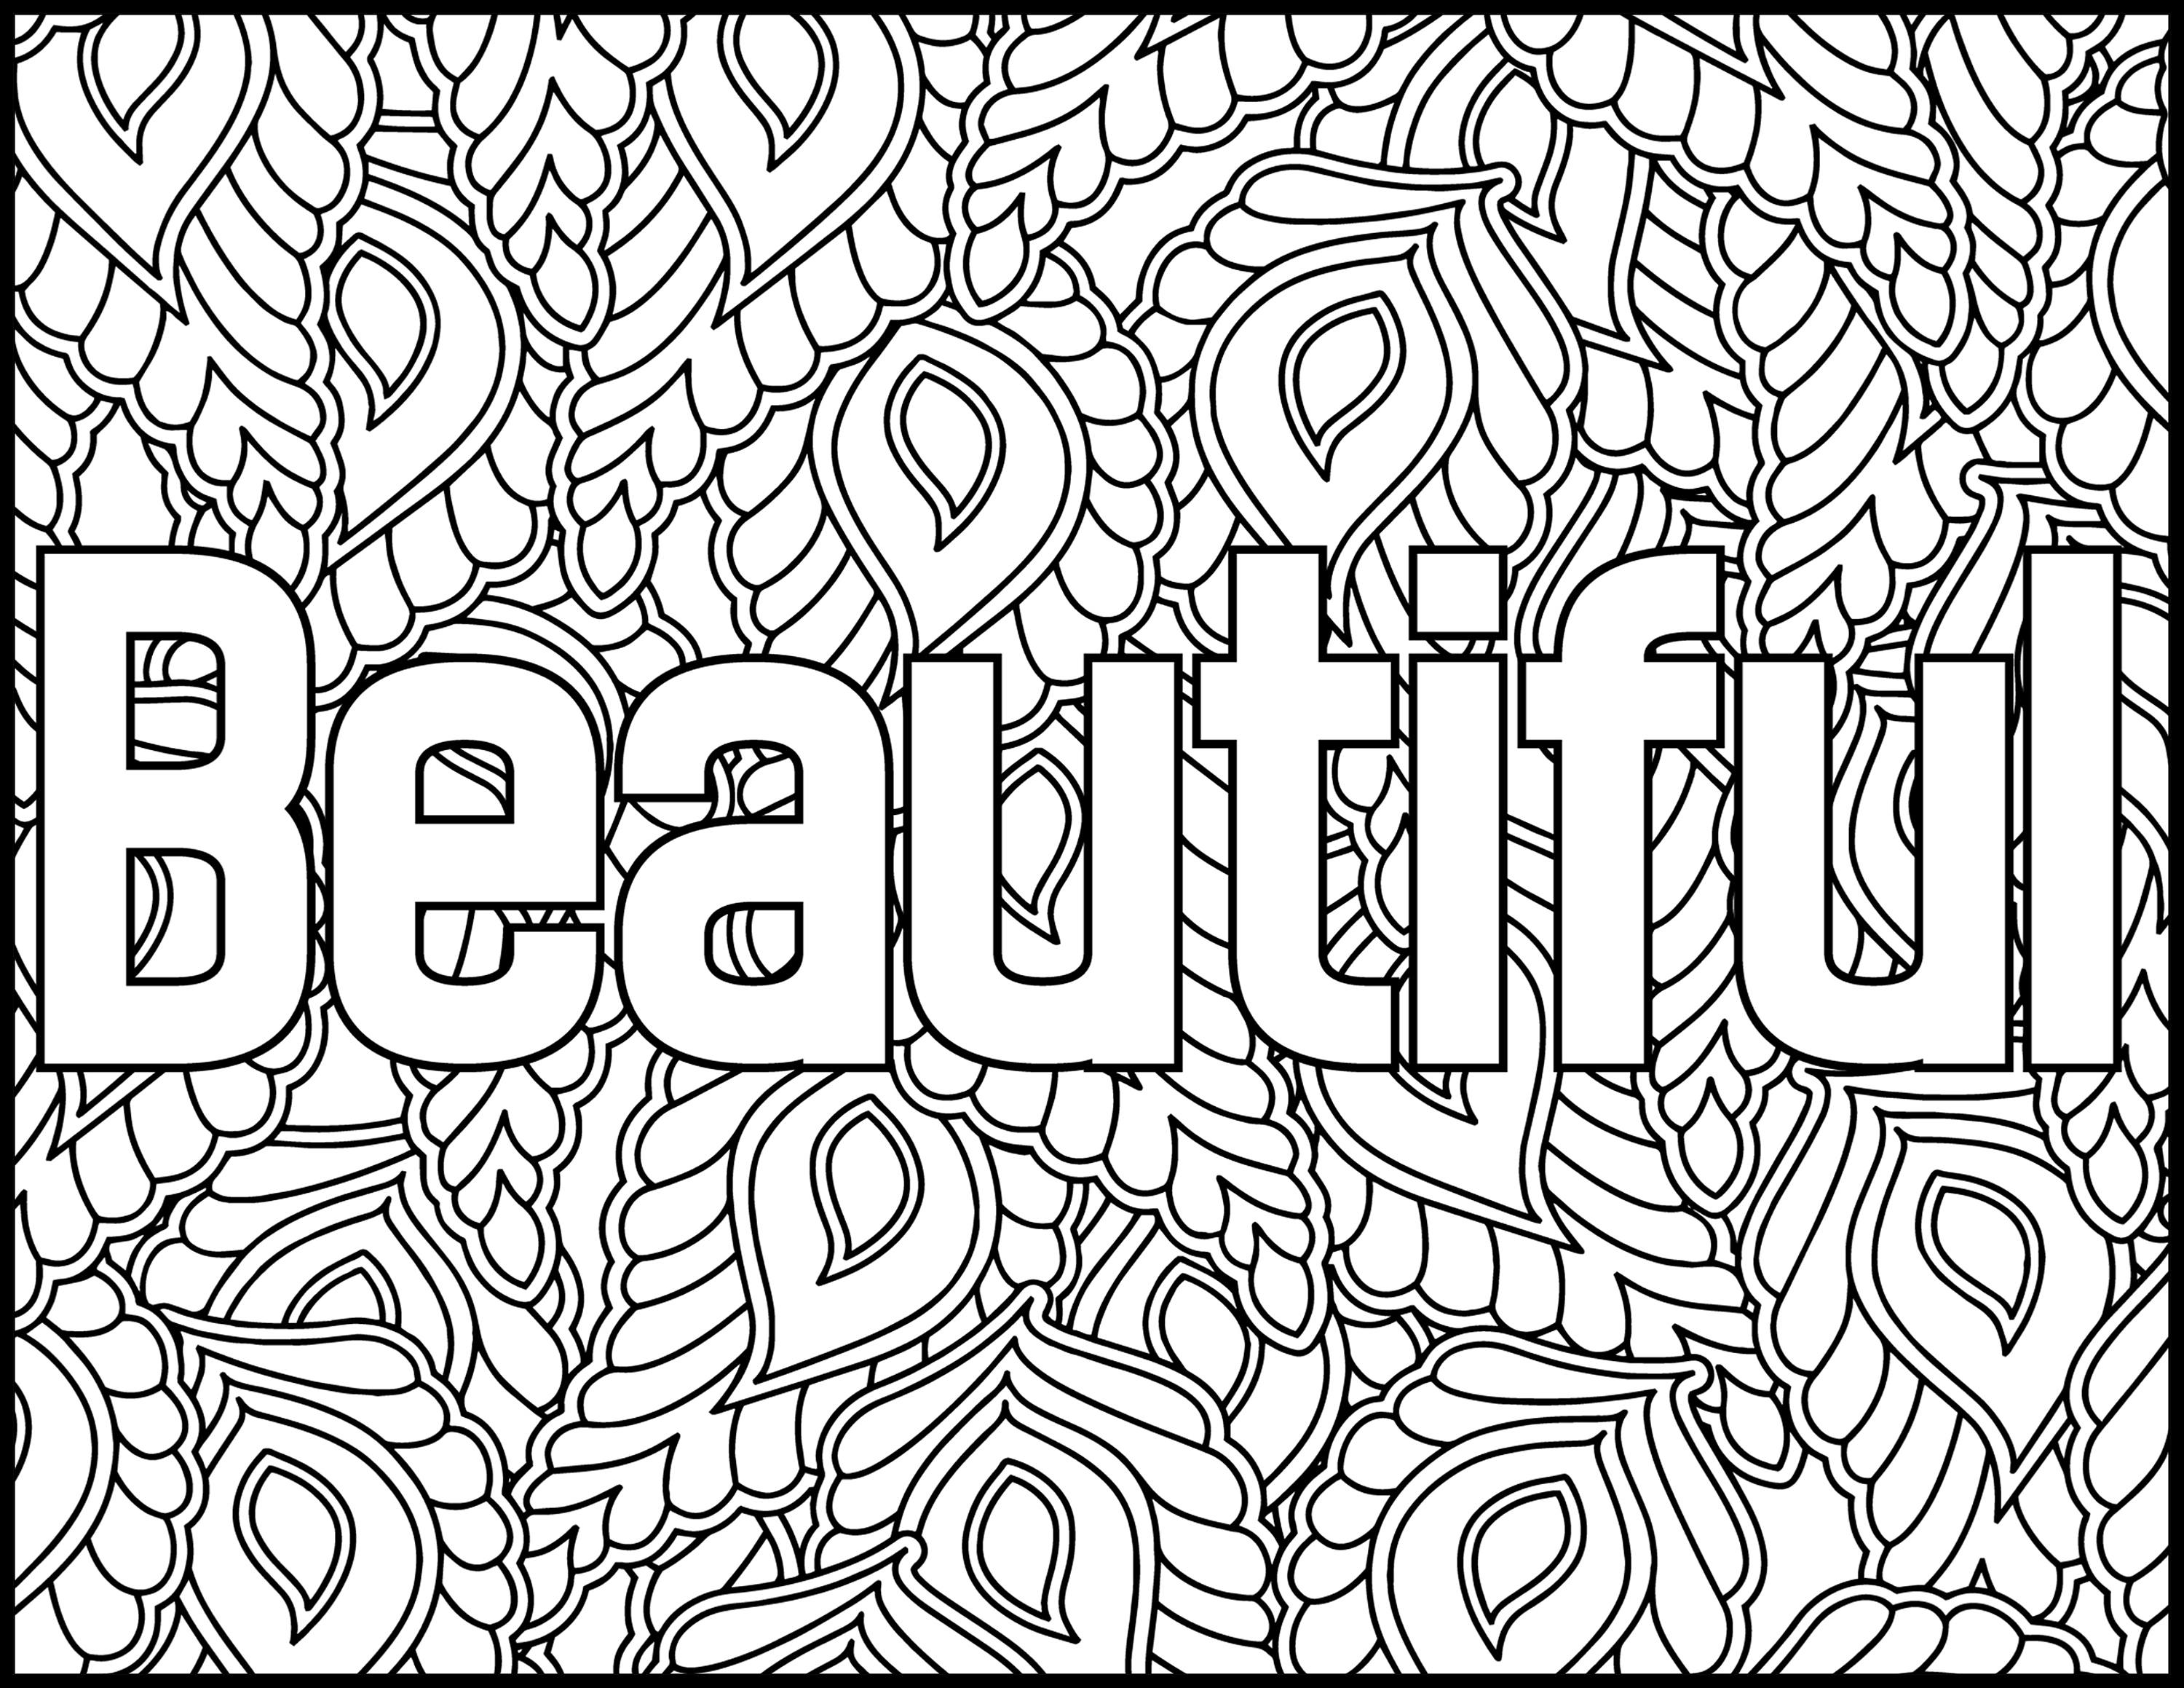 Amazing Quotes To Draw: Positive Affirmations Coloring Pages For Adults-Beautiful